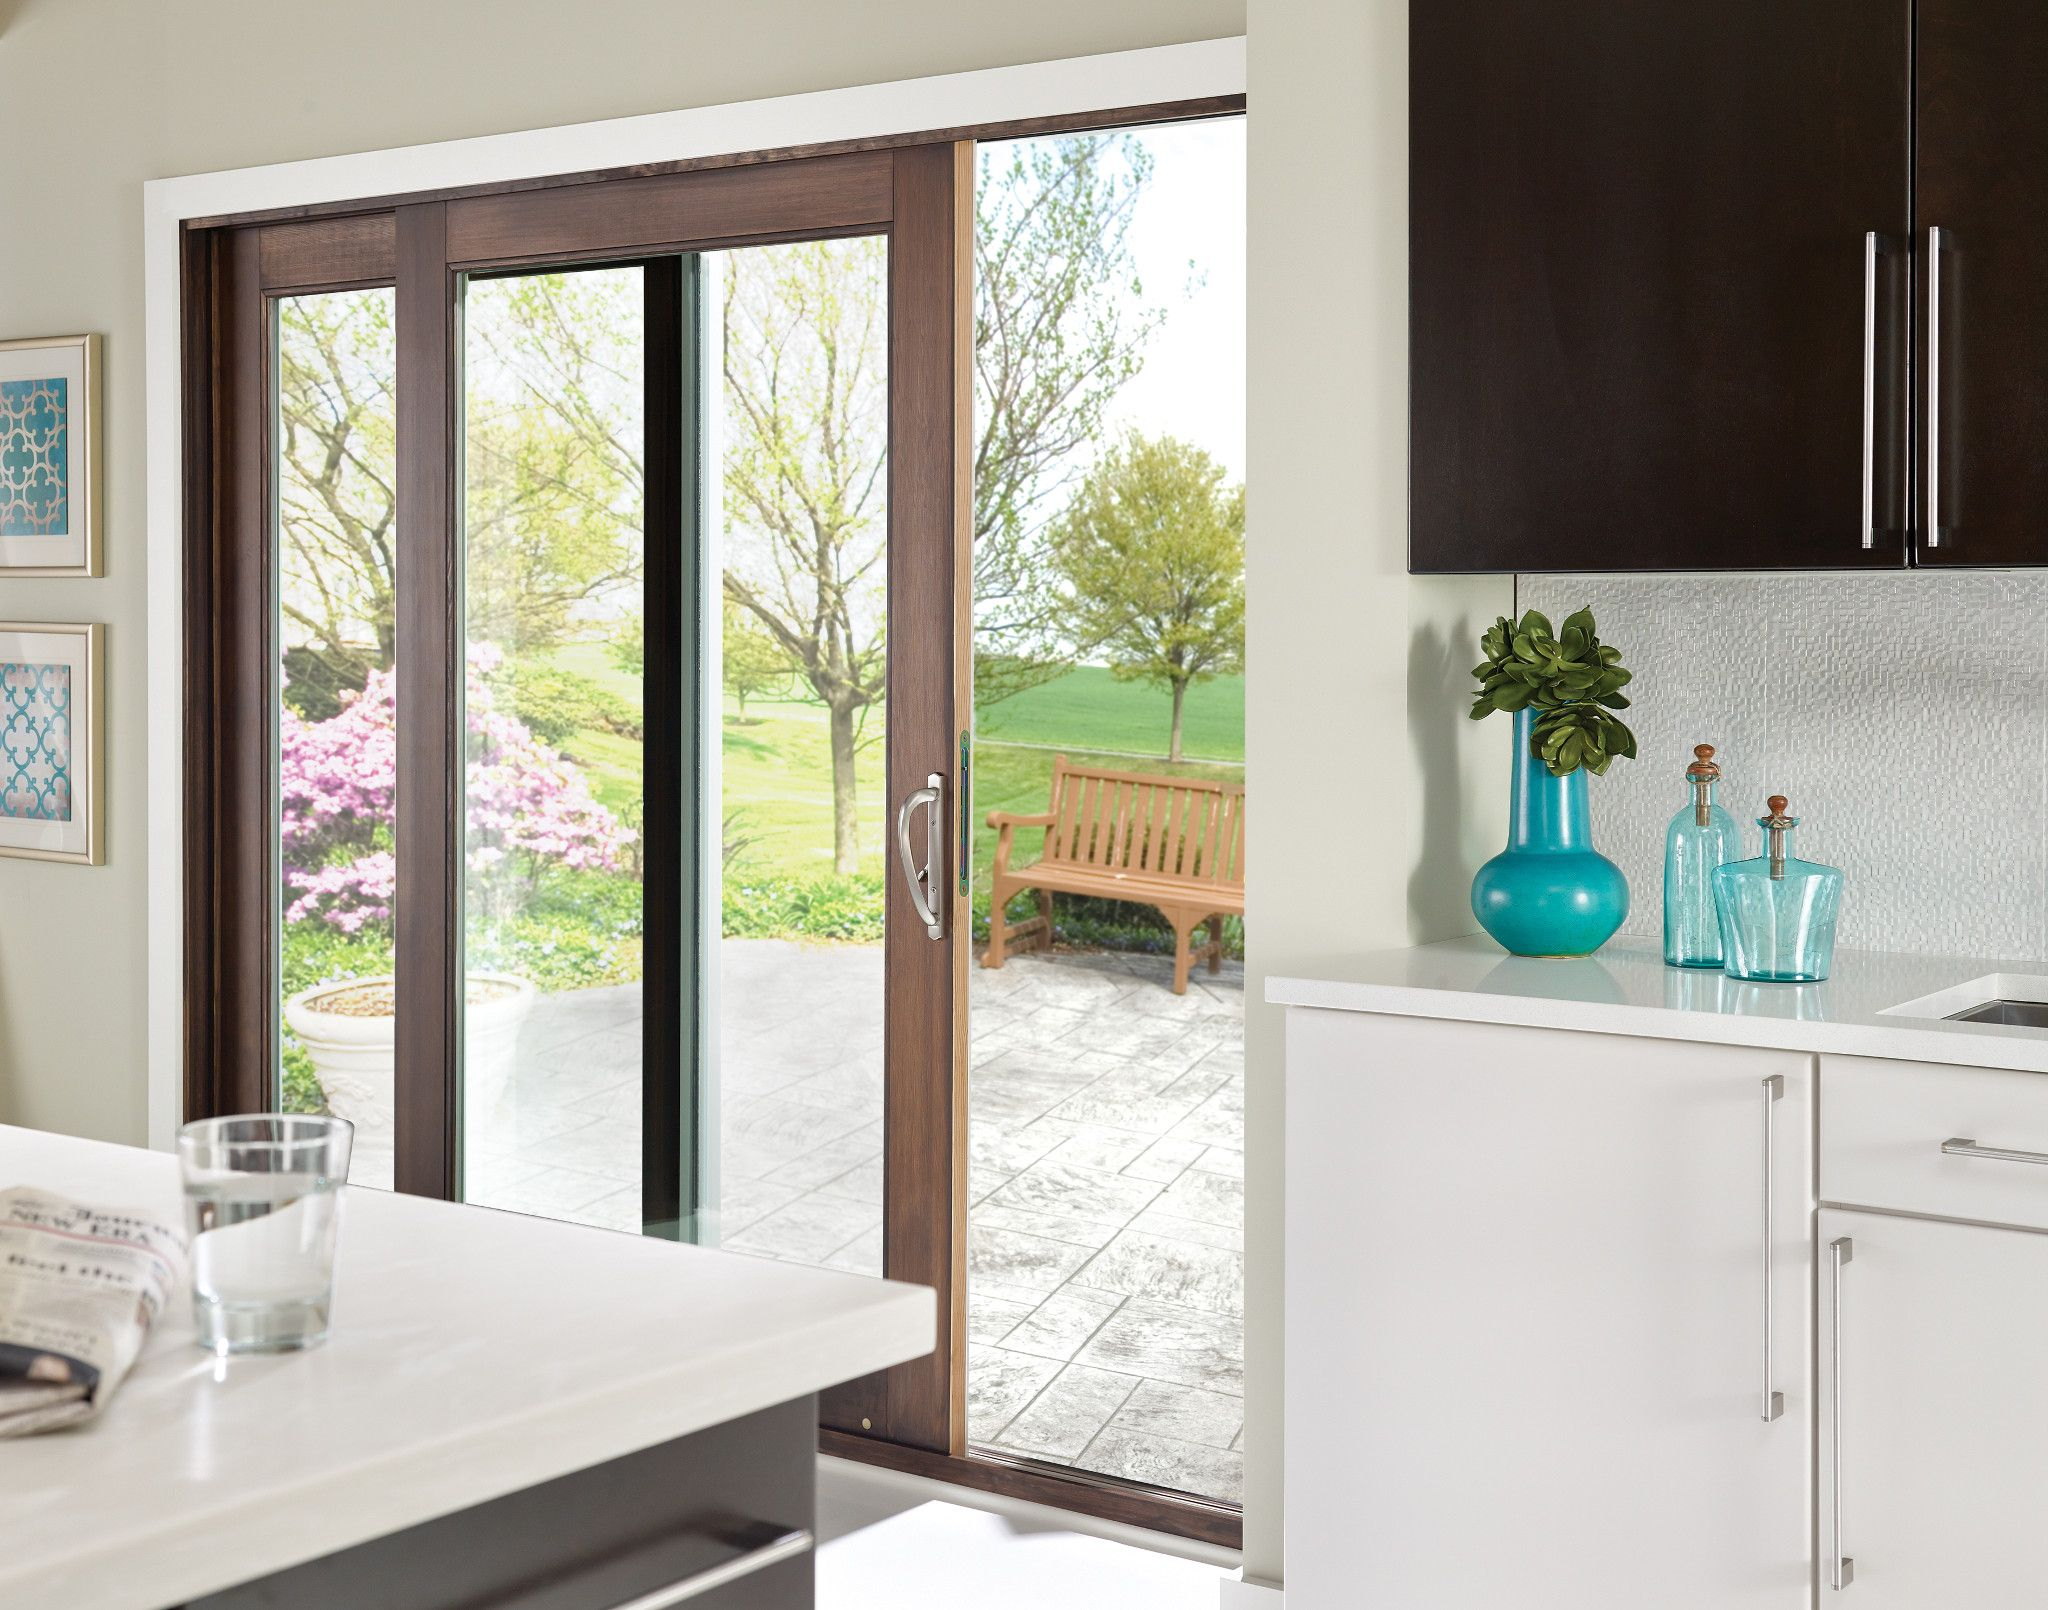 Bring The Outdoors In With Ply Gem S Sliding Patio Doors Modern Sliding Doors Patio Doors Kitchen Patio Doors